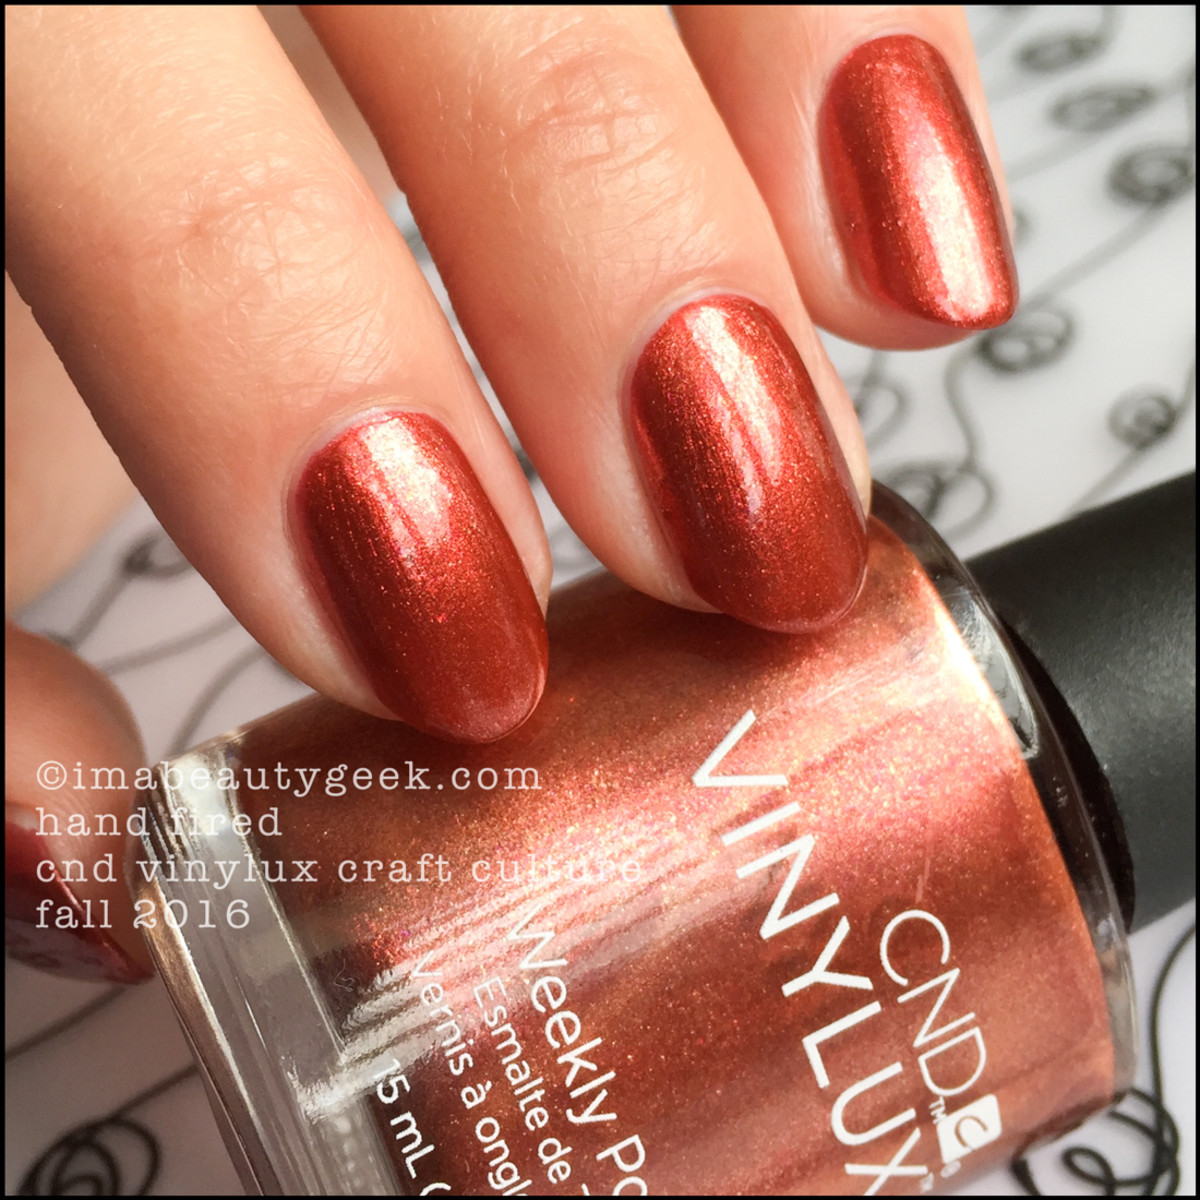 Cnd Vinylux Craft Culture Fall 2016 Swatches Review